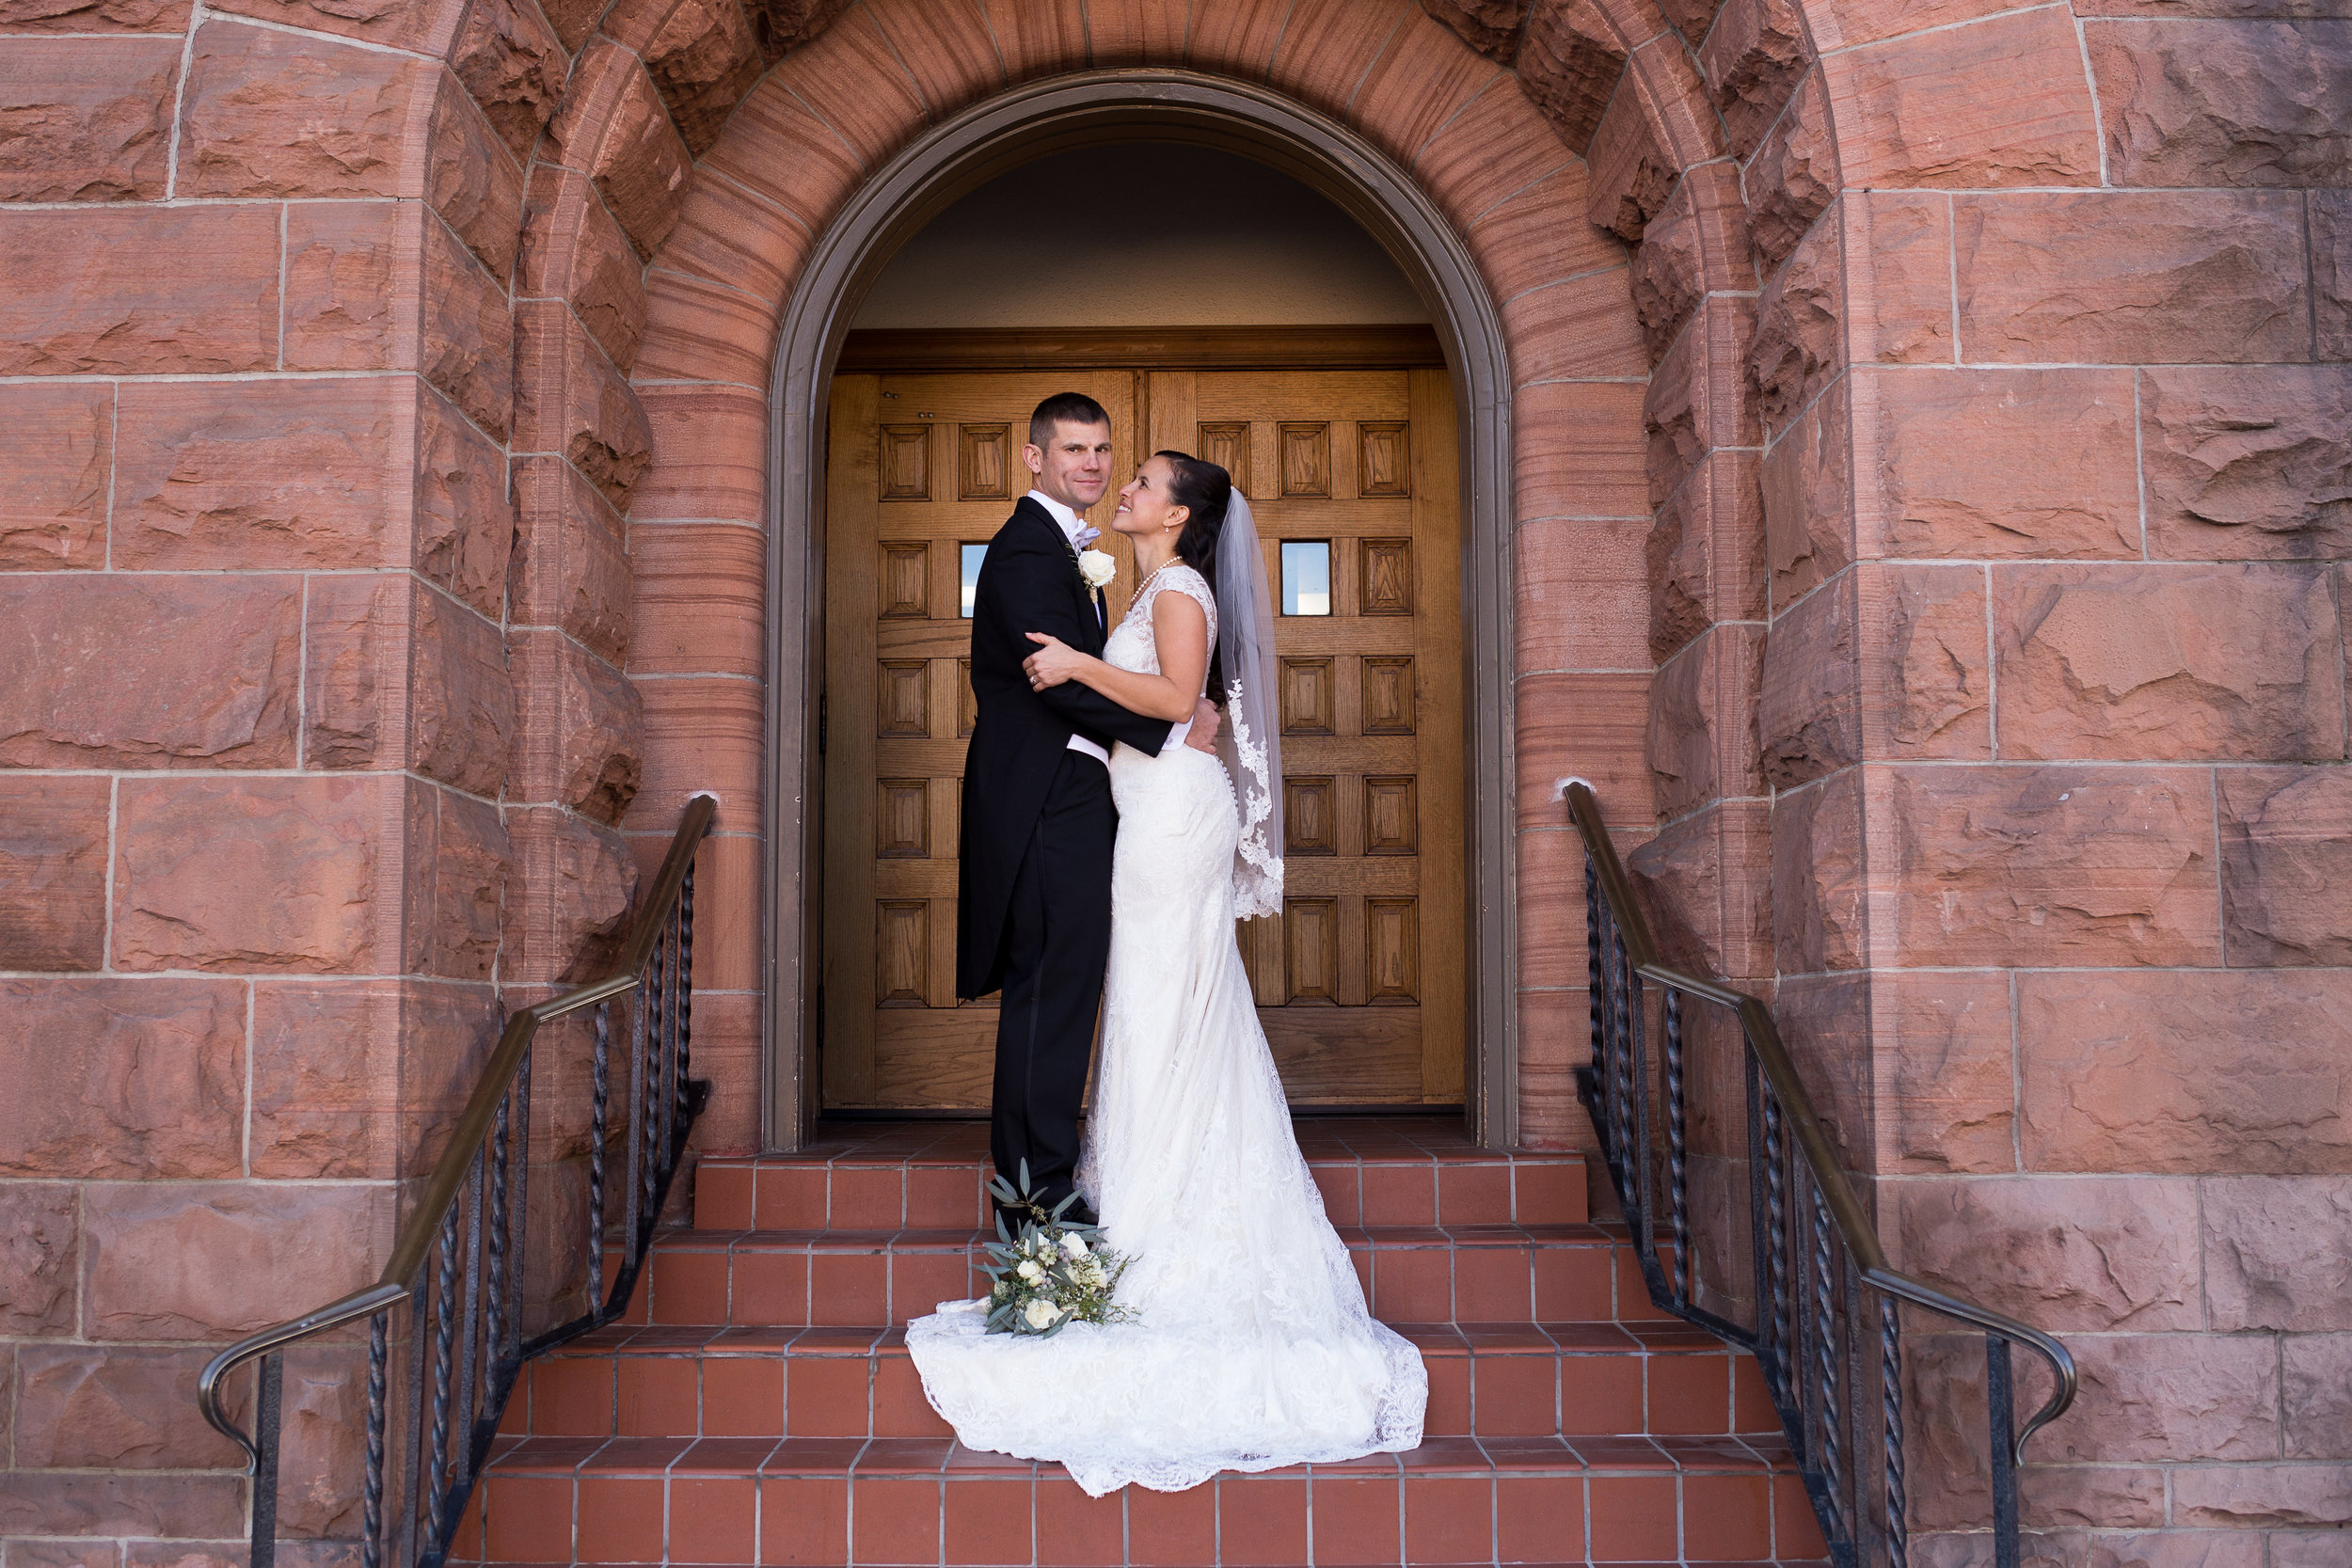 In the arc doorway of the First Baptist Church in downtown Colorado Springs is a couple holding each other and smiling Stacy Carosa Photography